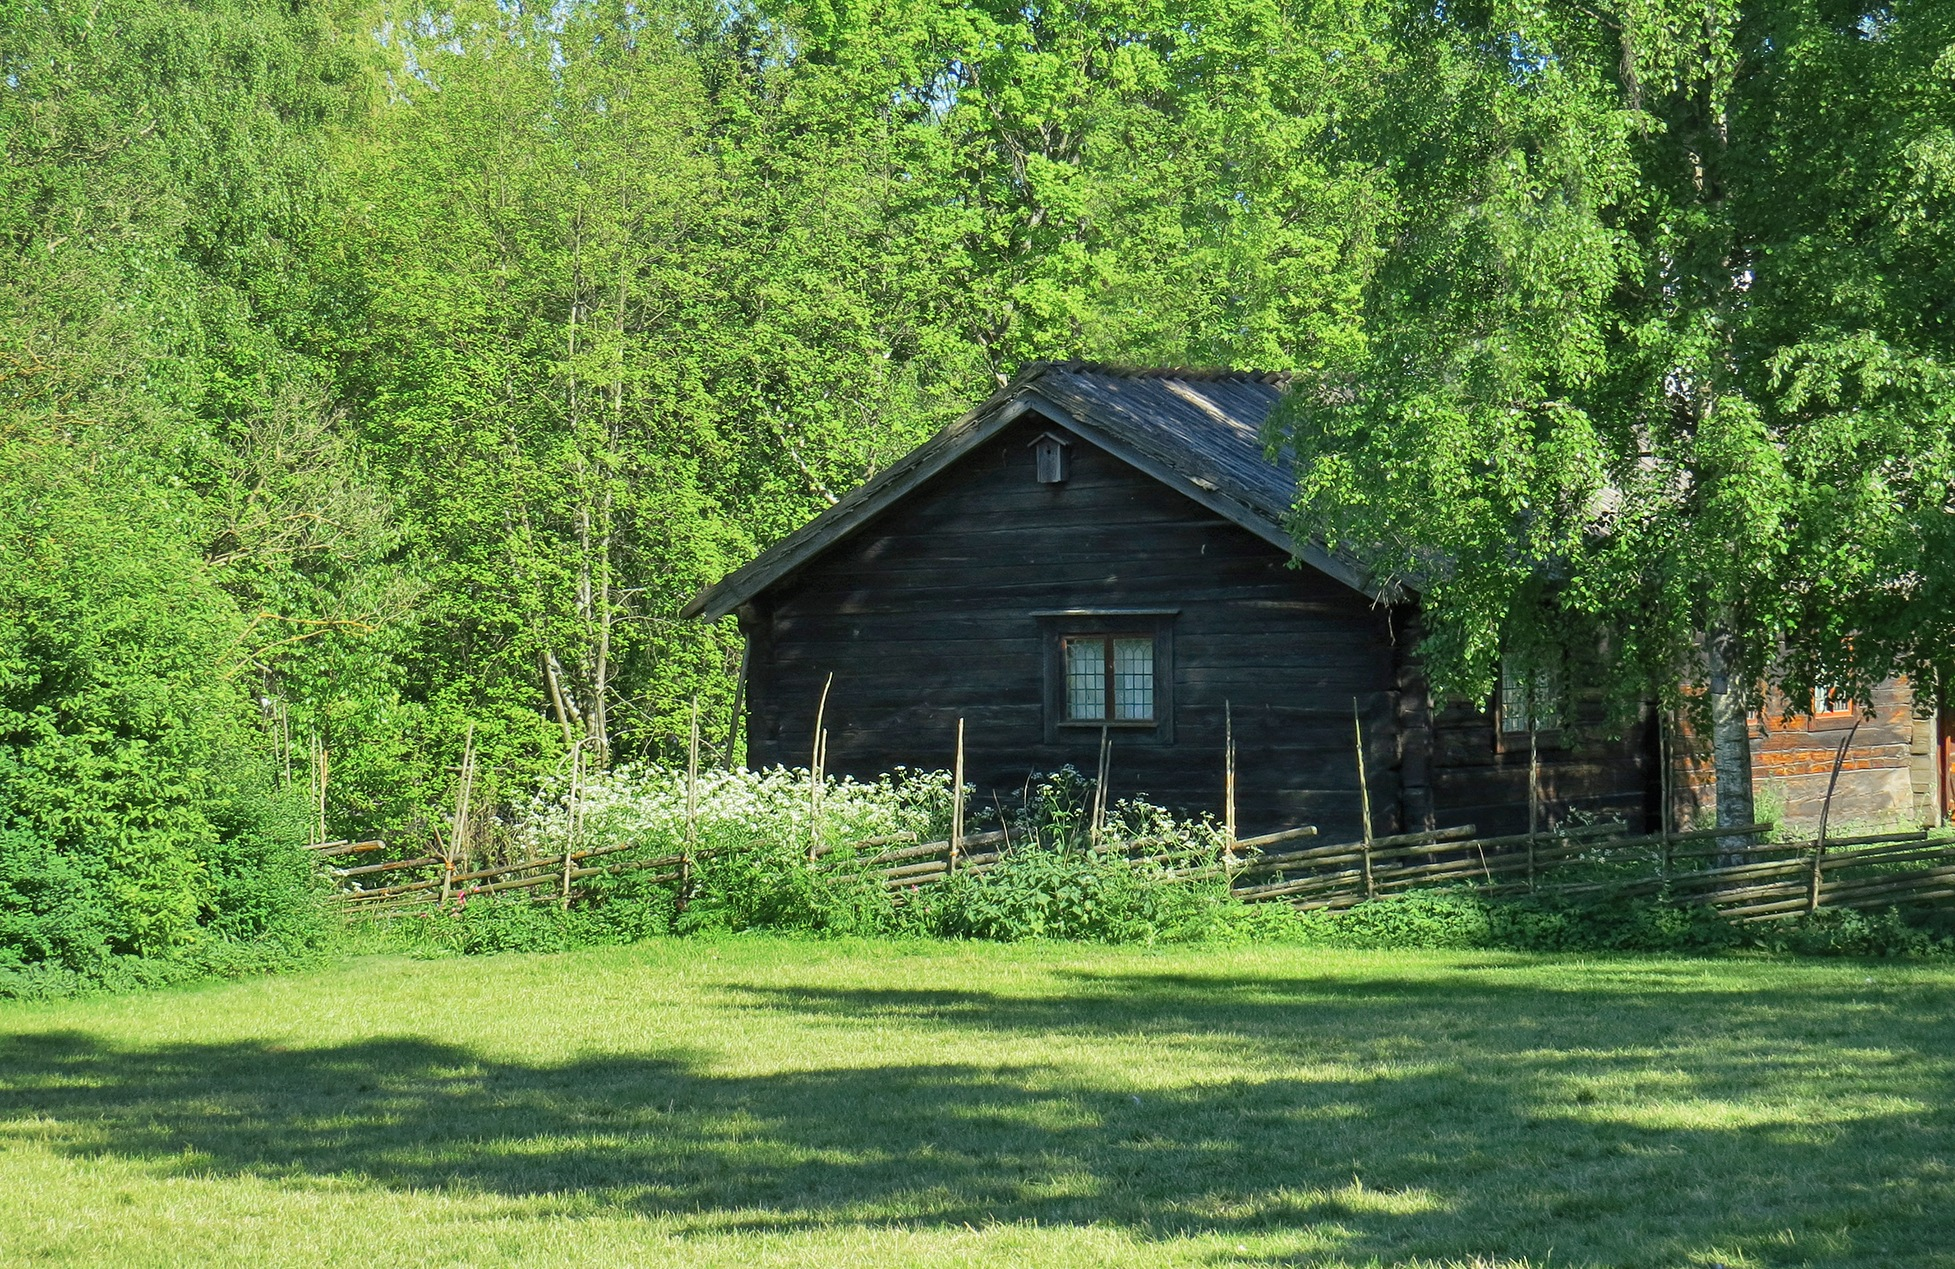 The Old Cottage by susanne.m.andersson.92